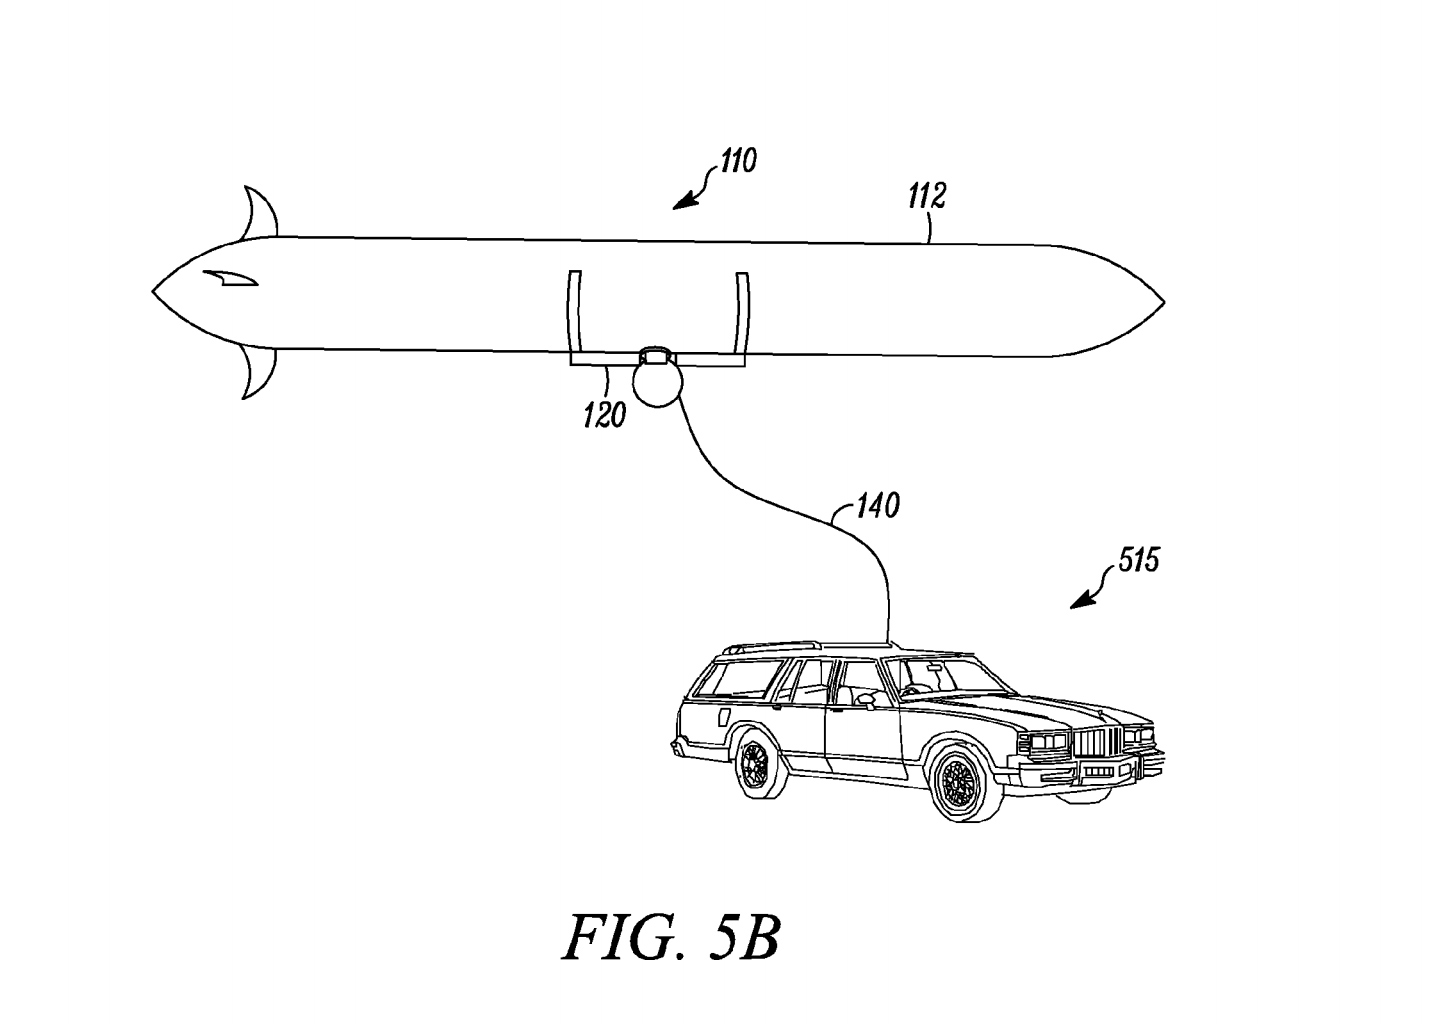 Boeing S Blimp Drones Could Refuel While Airborne And Fly